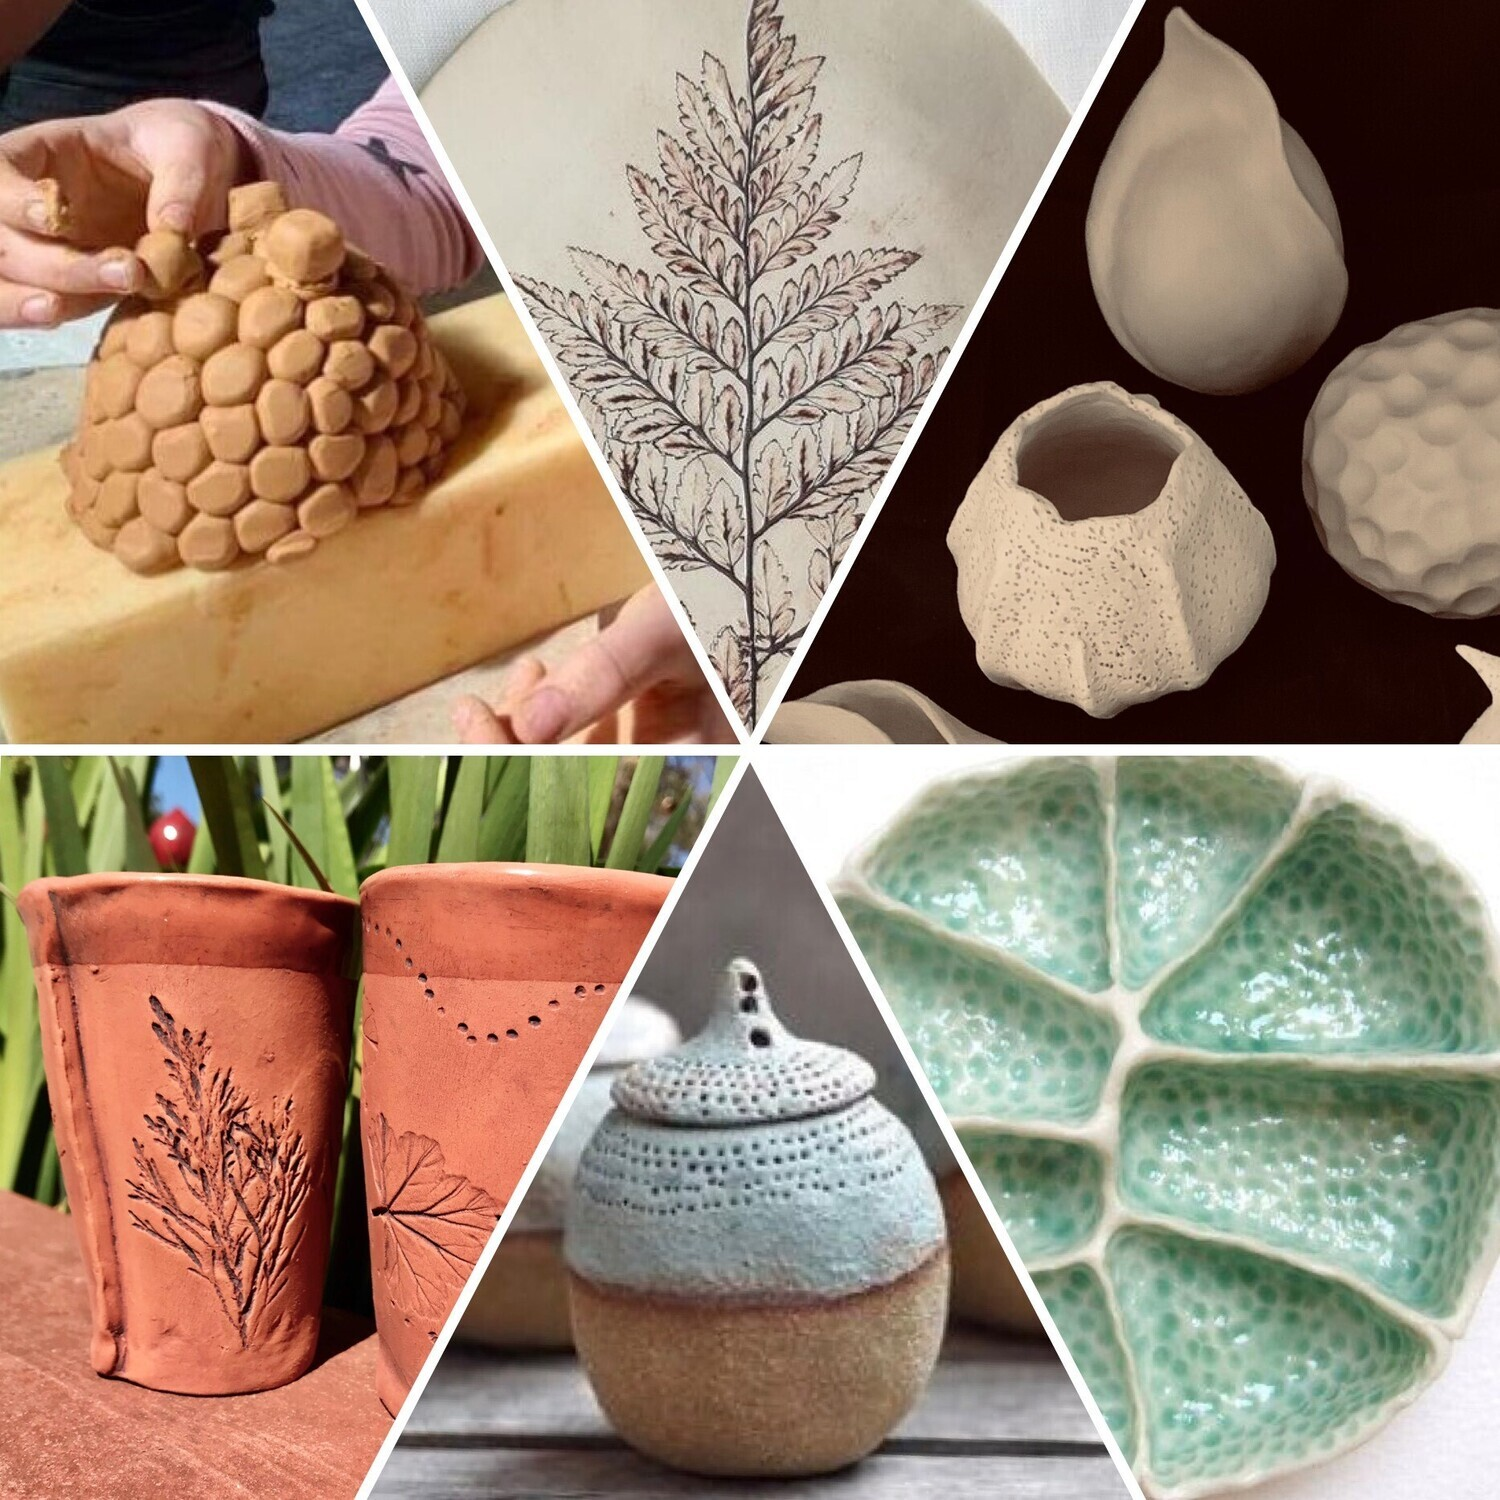 Hand-Building Pottery Workshop. 30th July 2-4pm & 14th August 12:30-1pm